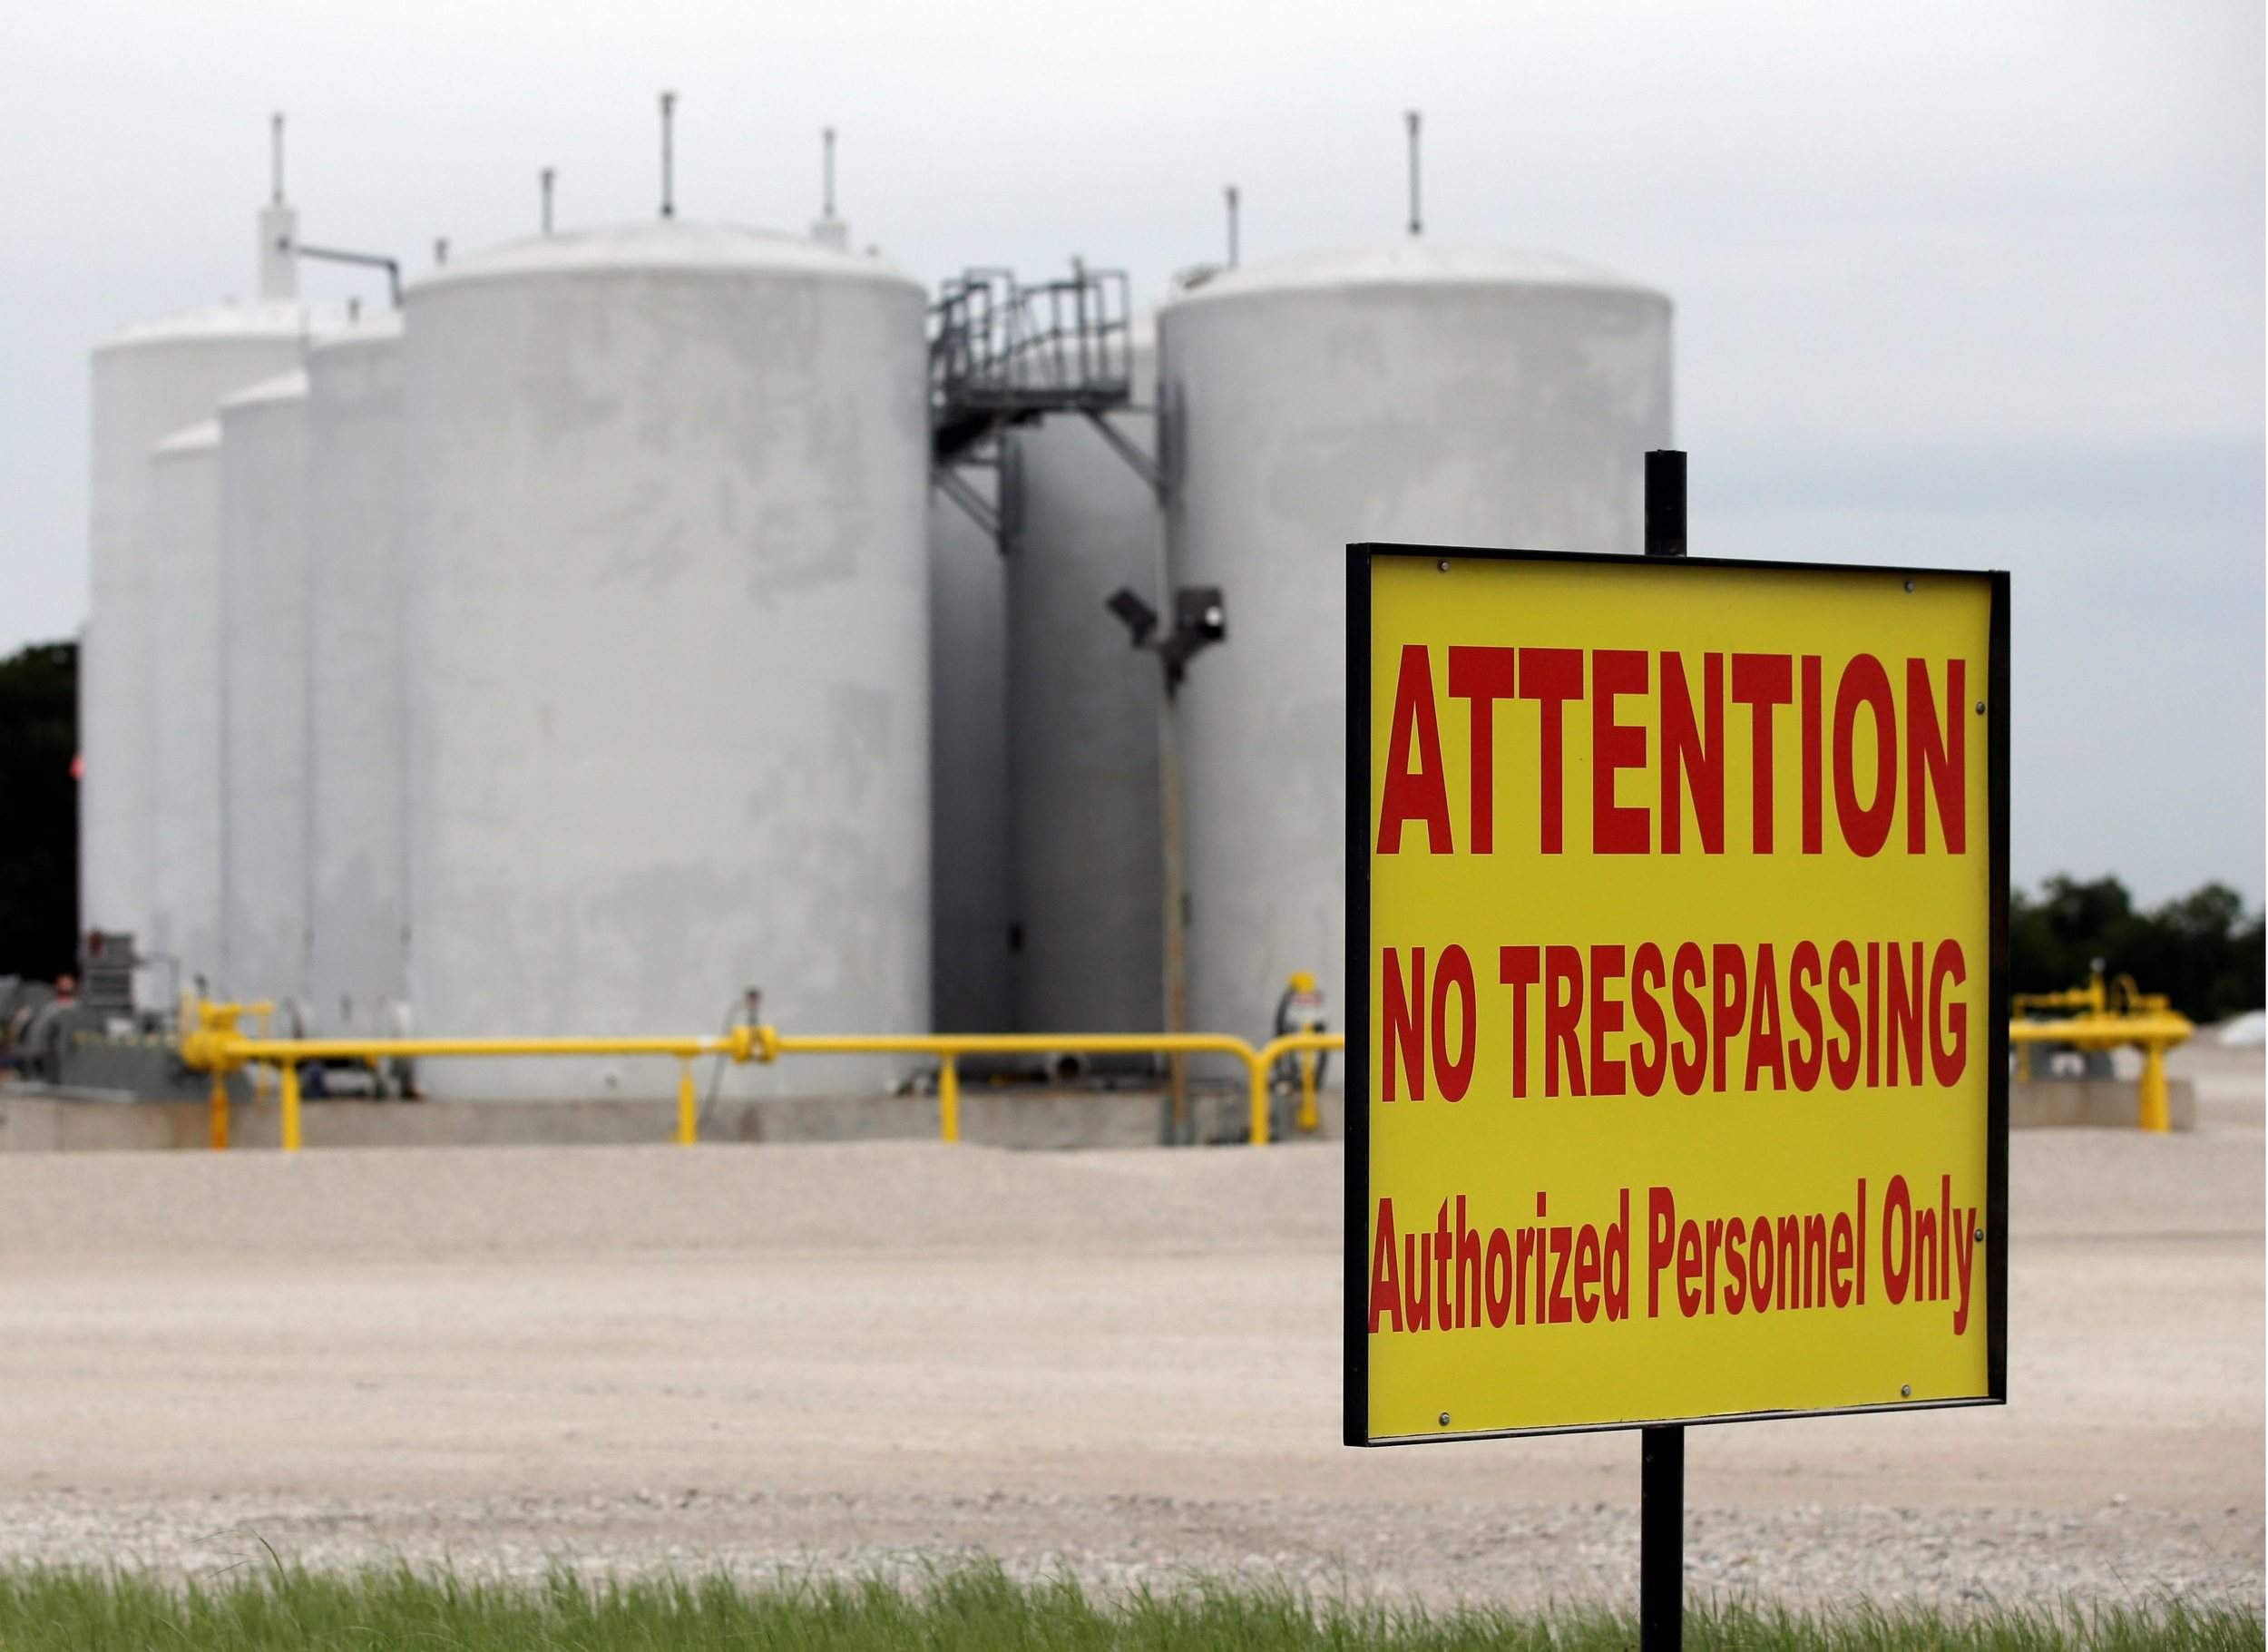 ... Azco Storage Azle Tx #49   Signs Warn Against Trespassing At A Well  Injection Site ...